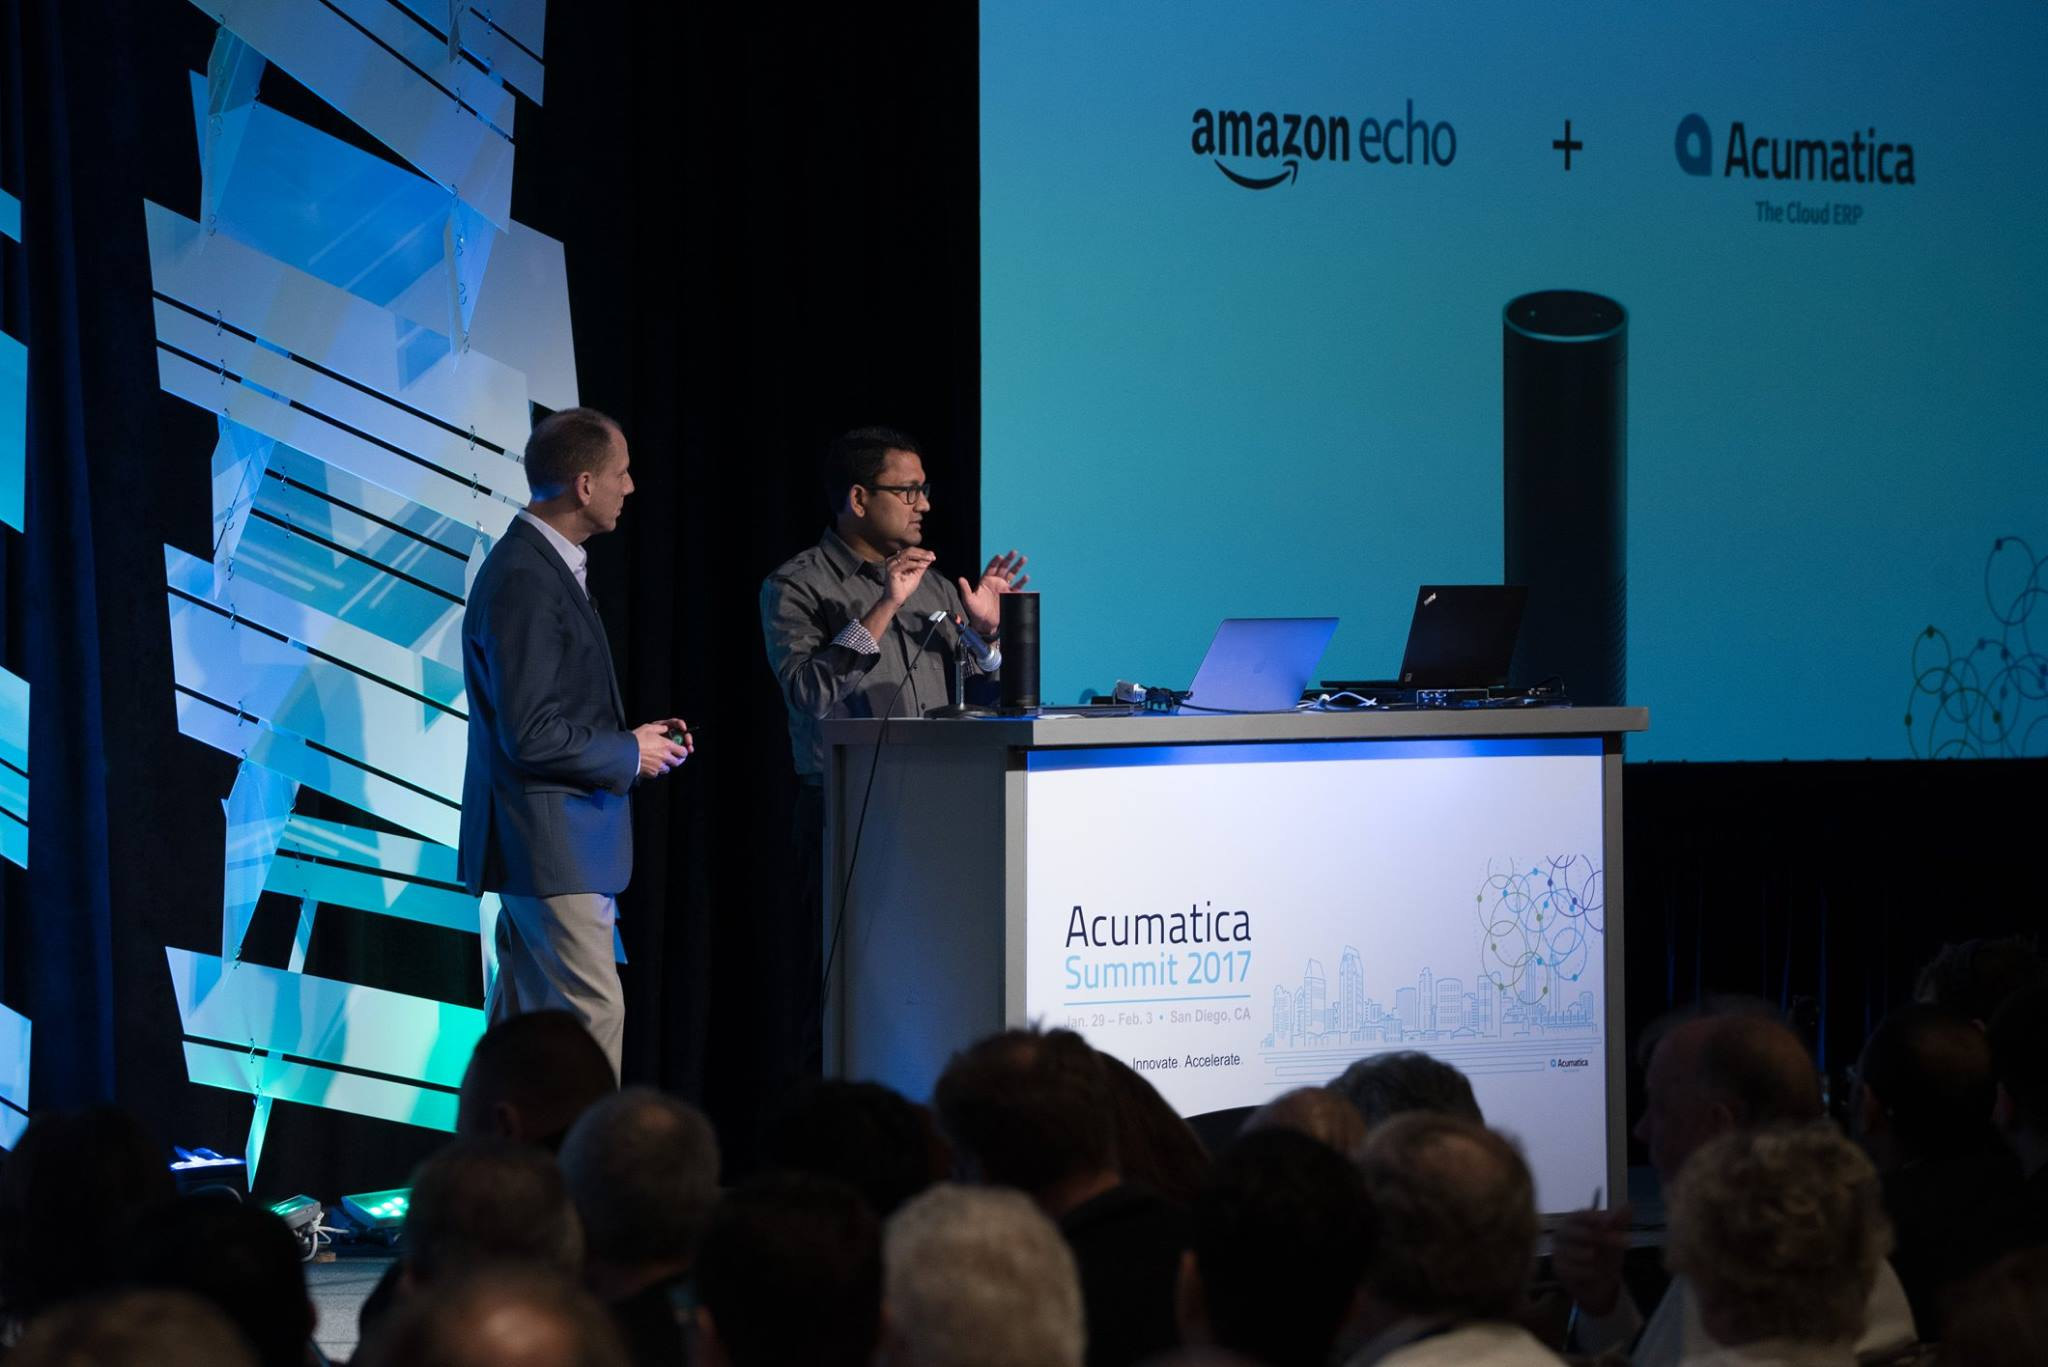 Acumatica CEO Jon Roskill and Ajoy Krishnamoorthy, Head of the Cloud Platform Division at Acumatica, demonstrate the Acumatica and Amazon Echo integration.